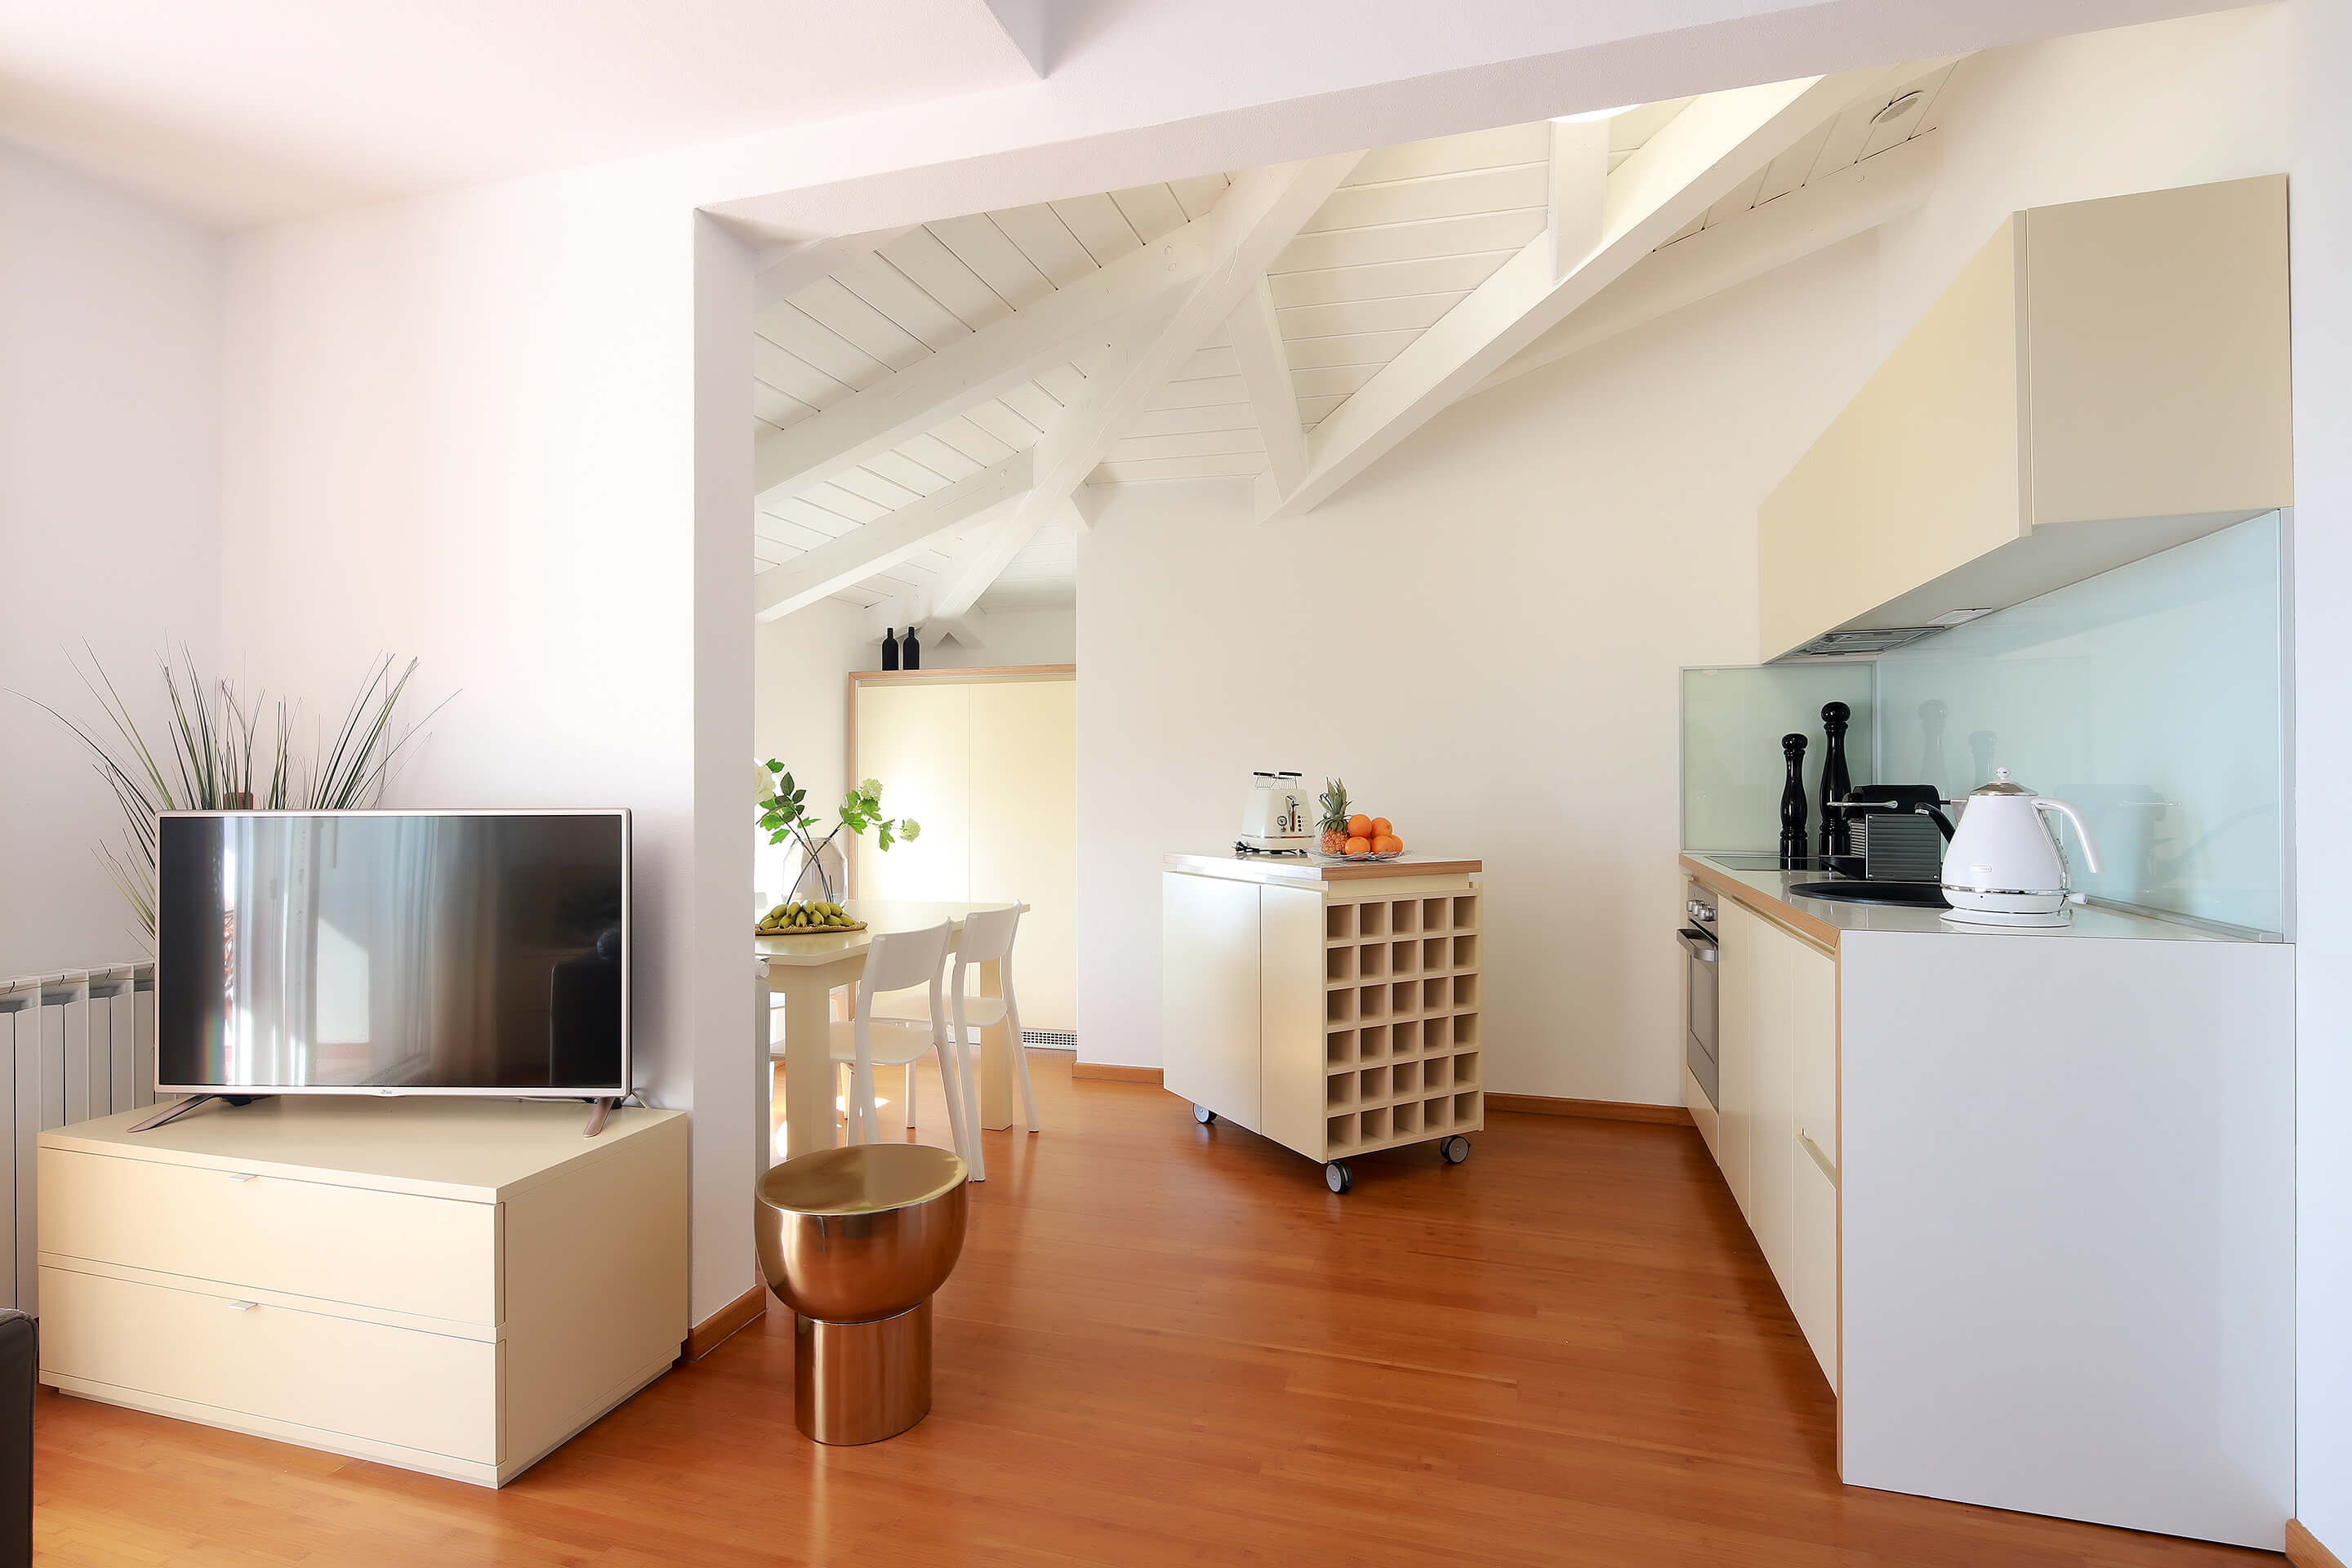 A5 - new luxury - kitchen - dining area - accessories - electric kettle - nespresso machine - toaster